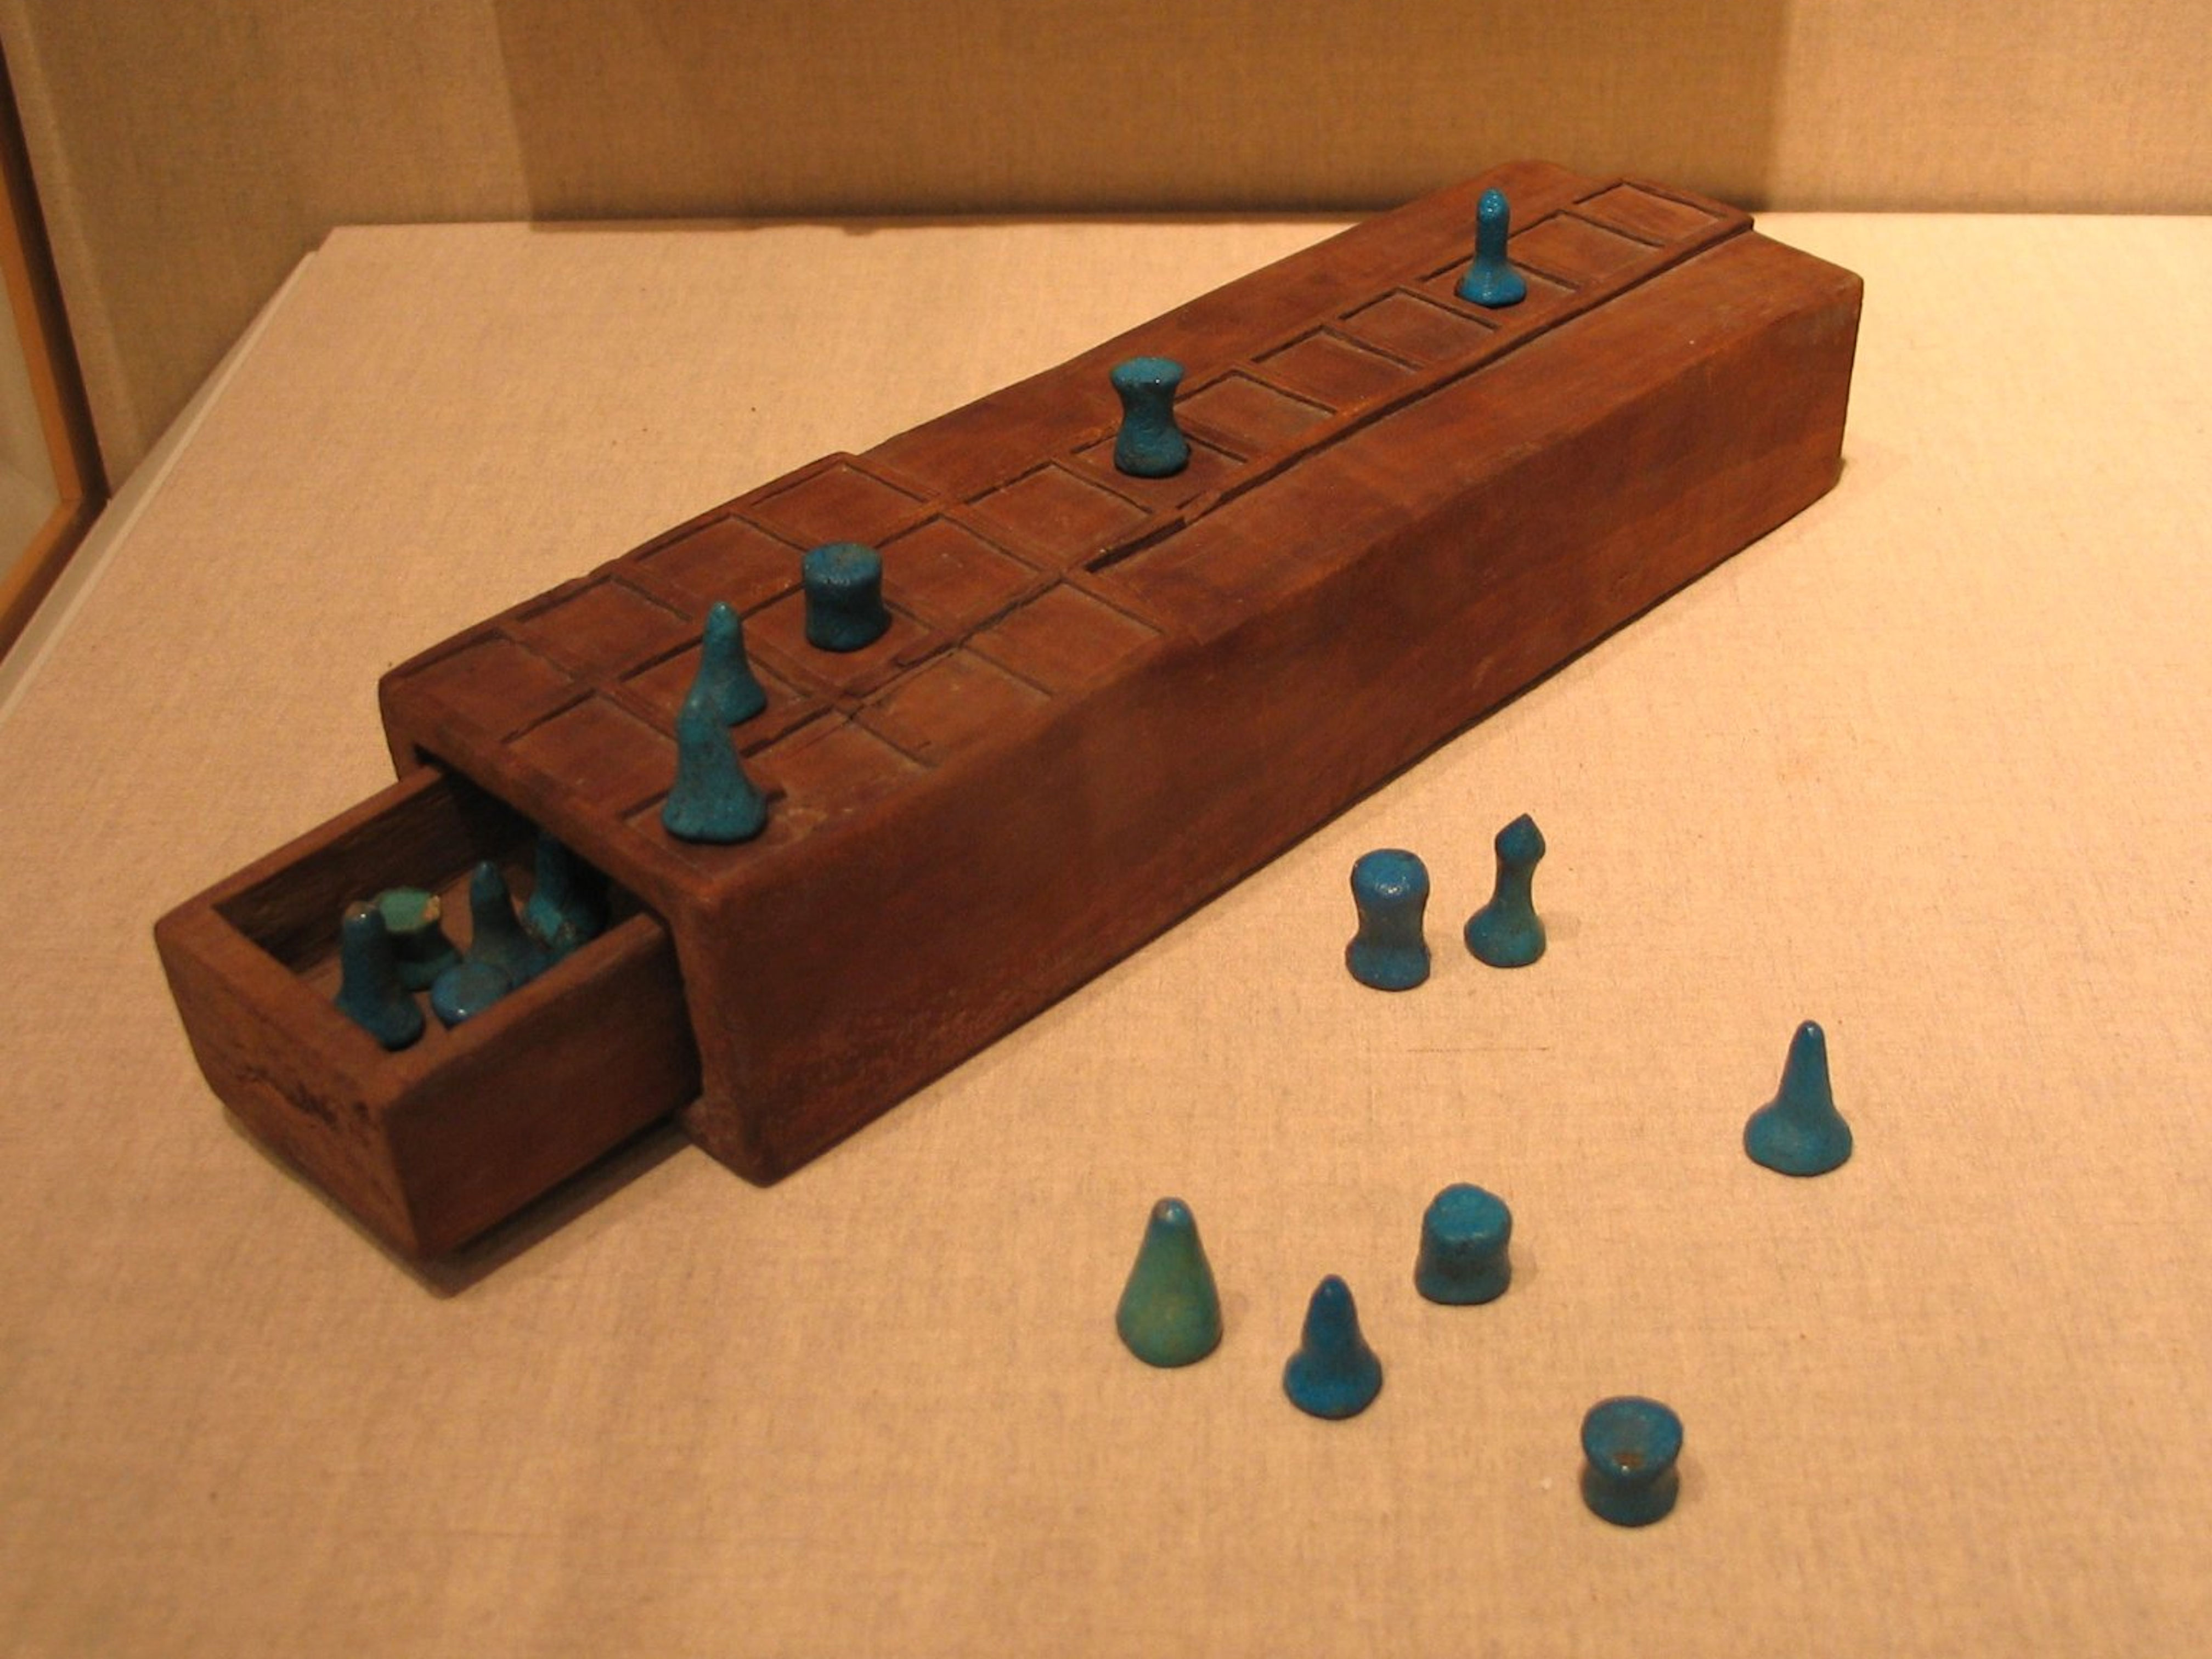 Wooden Aseb Game of 18th Dynasty - Brooklyn Museum - 37.93E, 37.94E